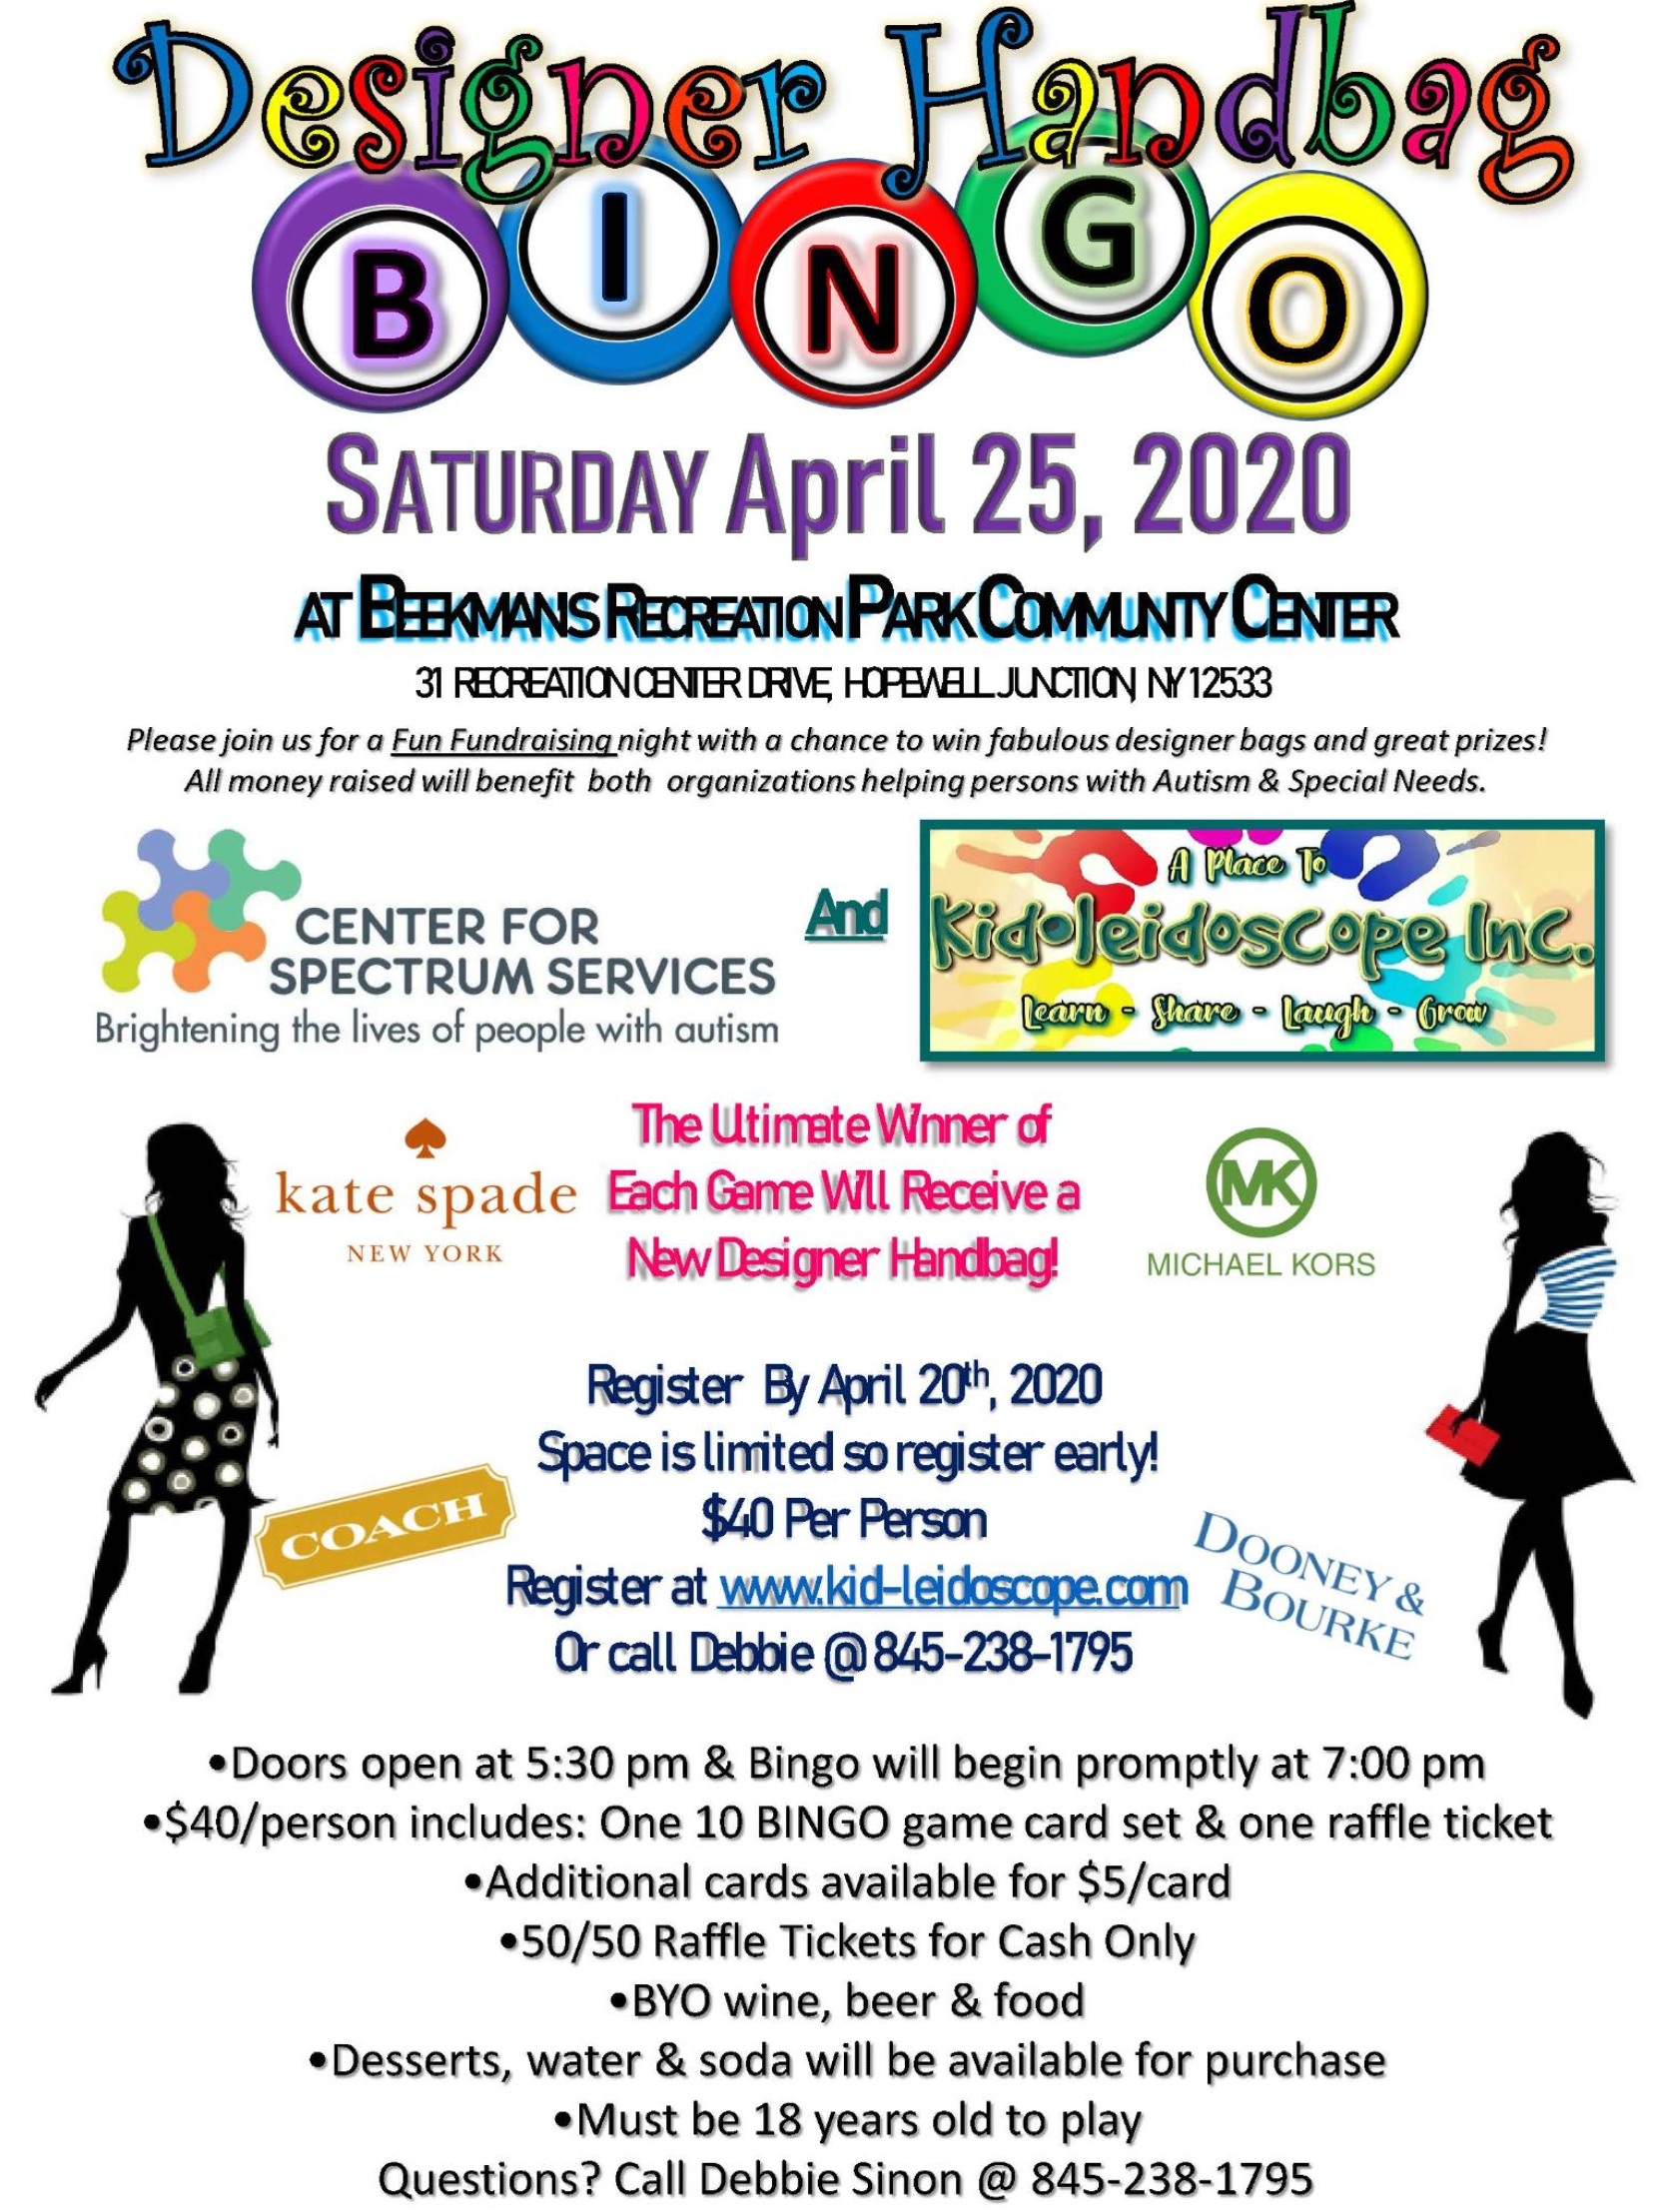 Kid-leidoscope Inc.'s & Center for Spectrum Services Designer Handbag BINGO April 25, 2020 to support children with special needs.